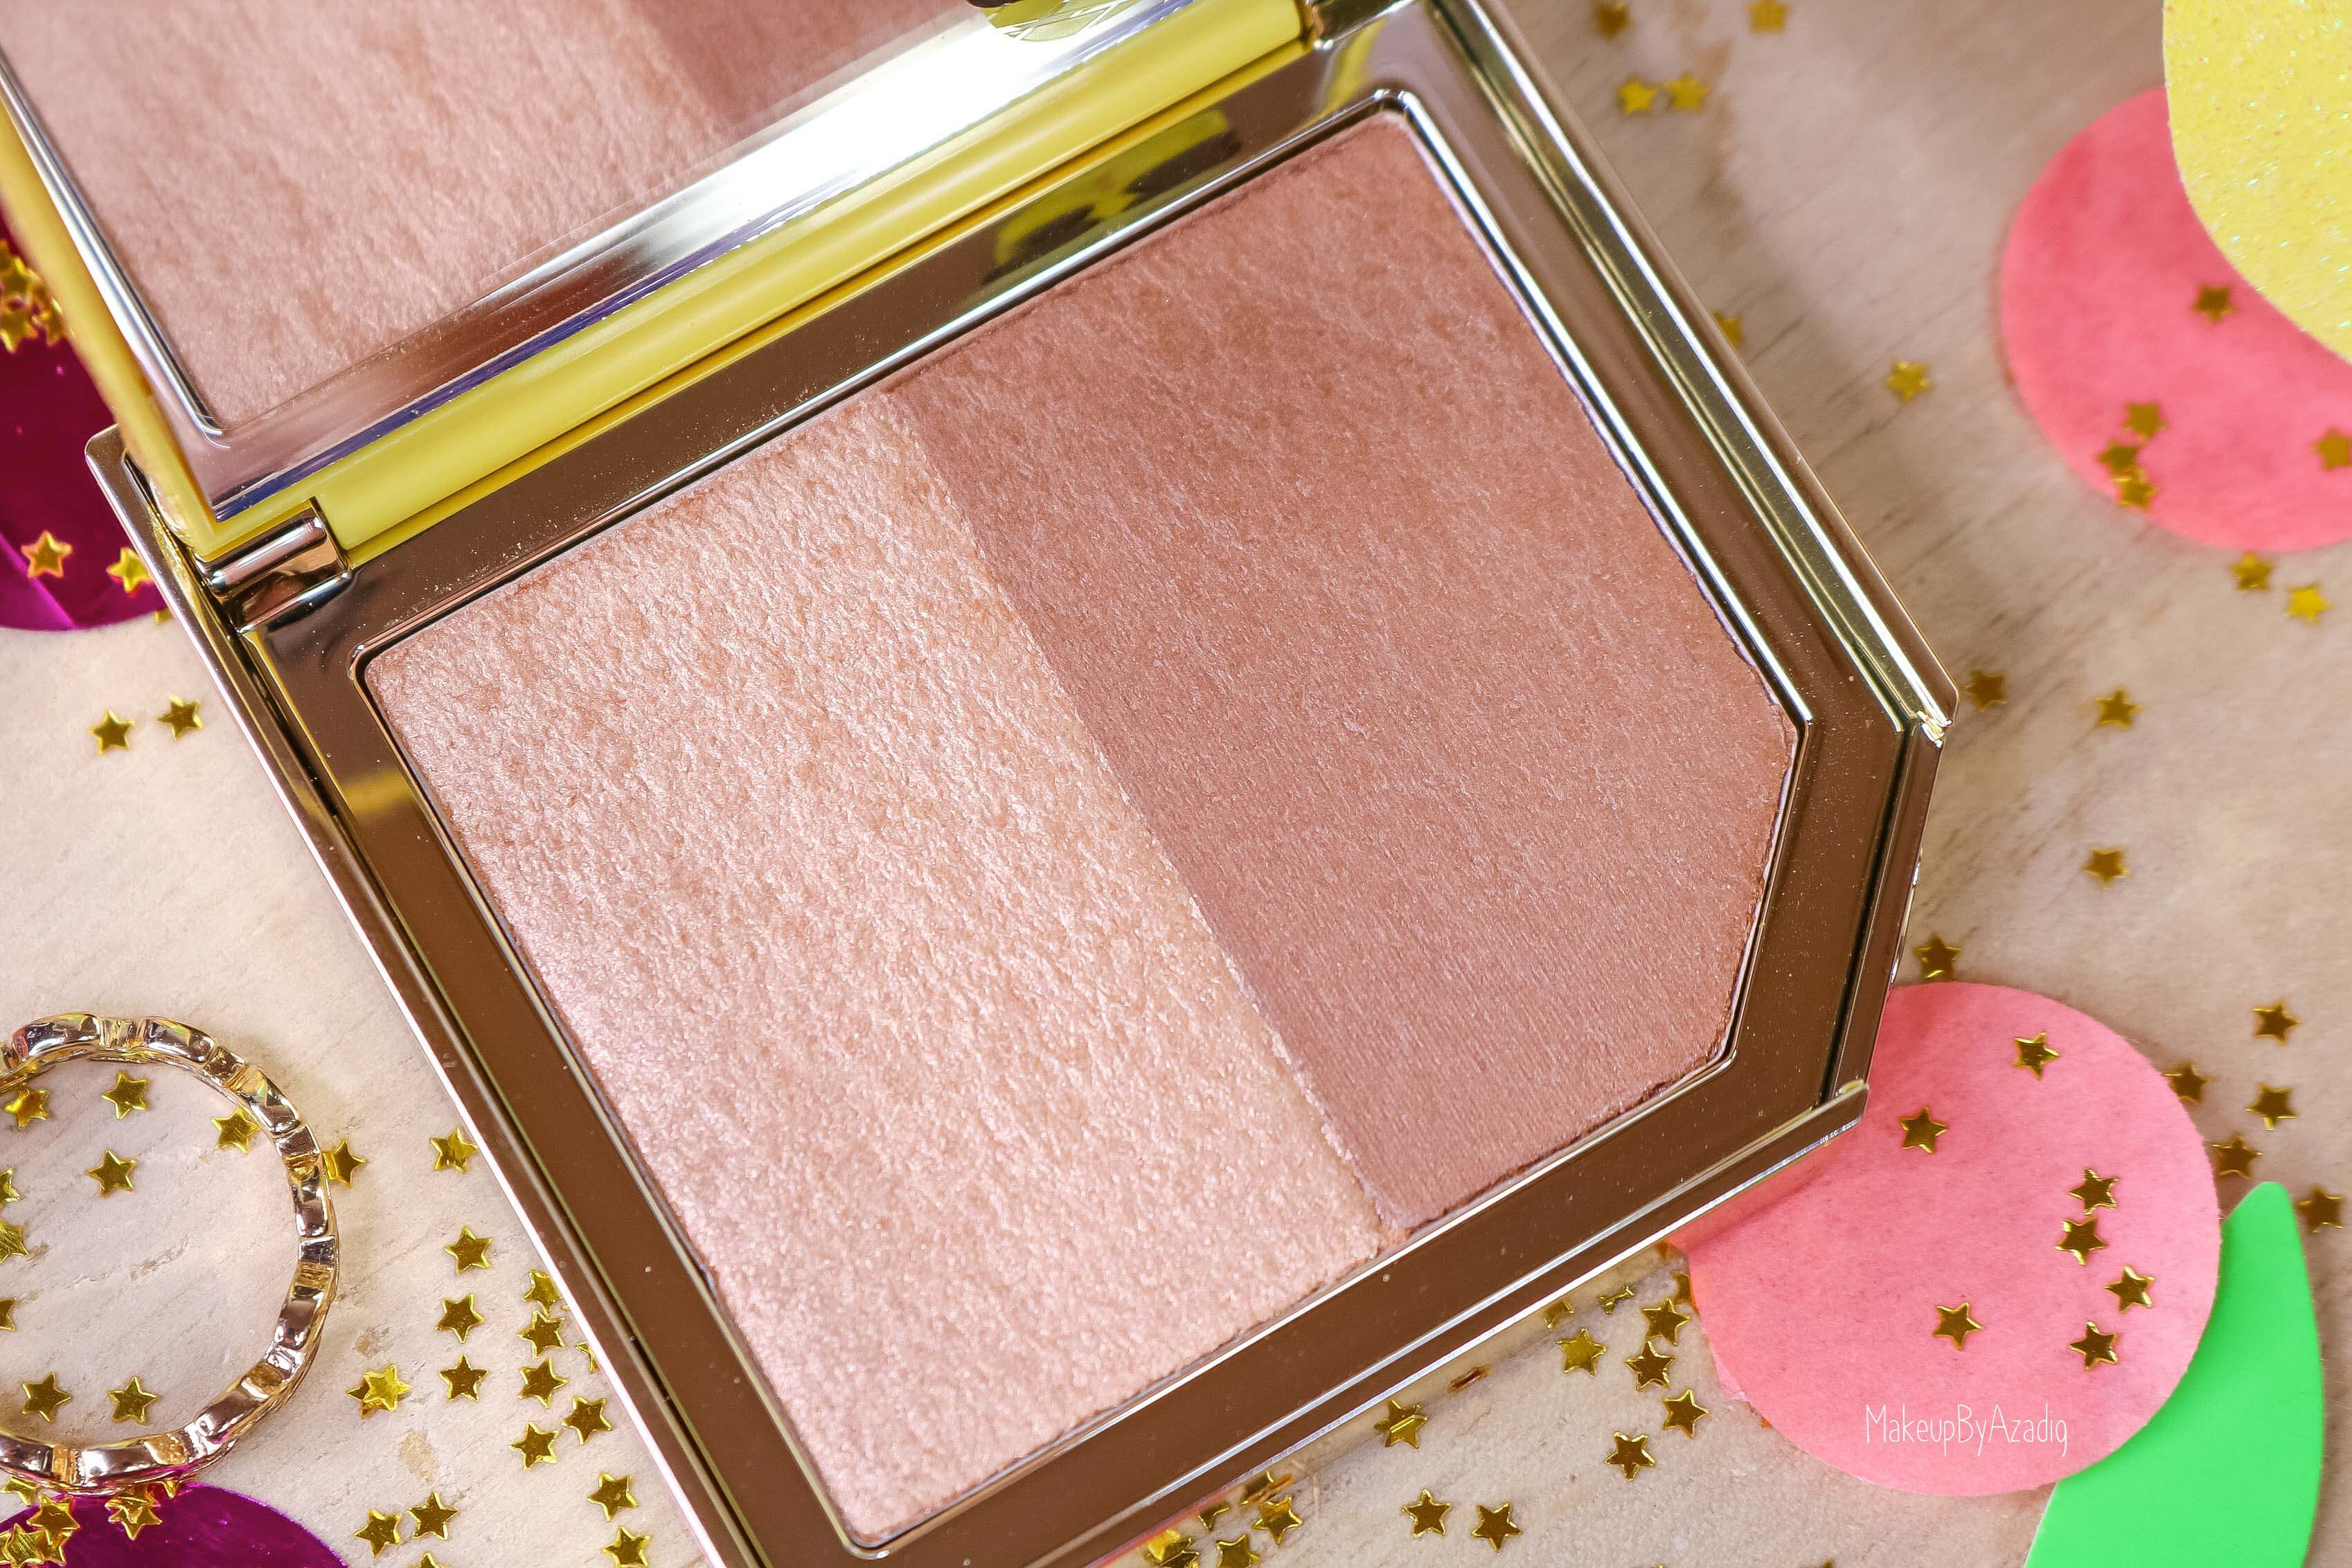 revue-collection-tutti-frutti-too-faced-bronzeur-highlighter-pineapple-paradise-sun-sephora-france-makeupbyazadig-swatch-avis-prix-ananas-gold